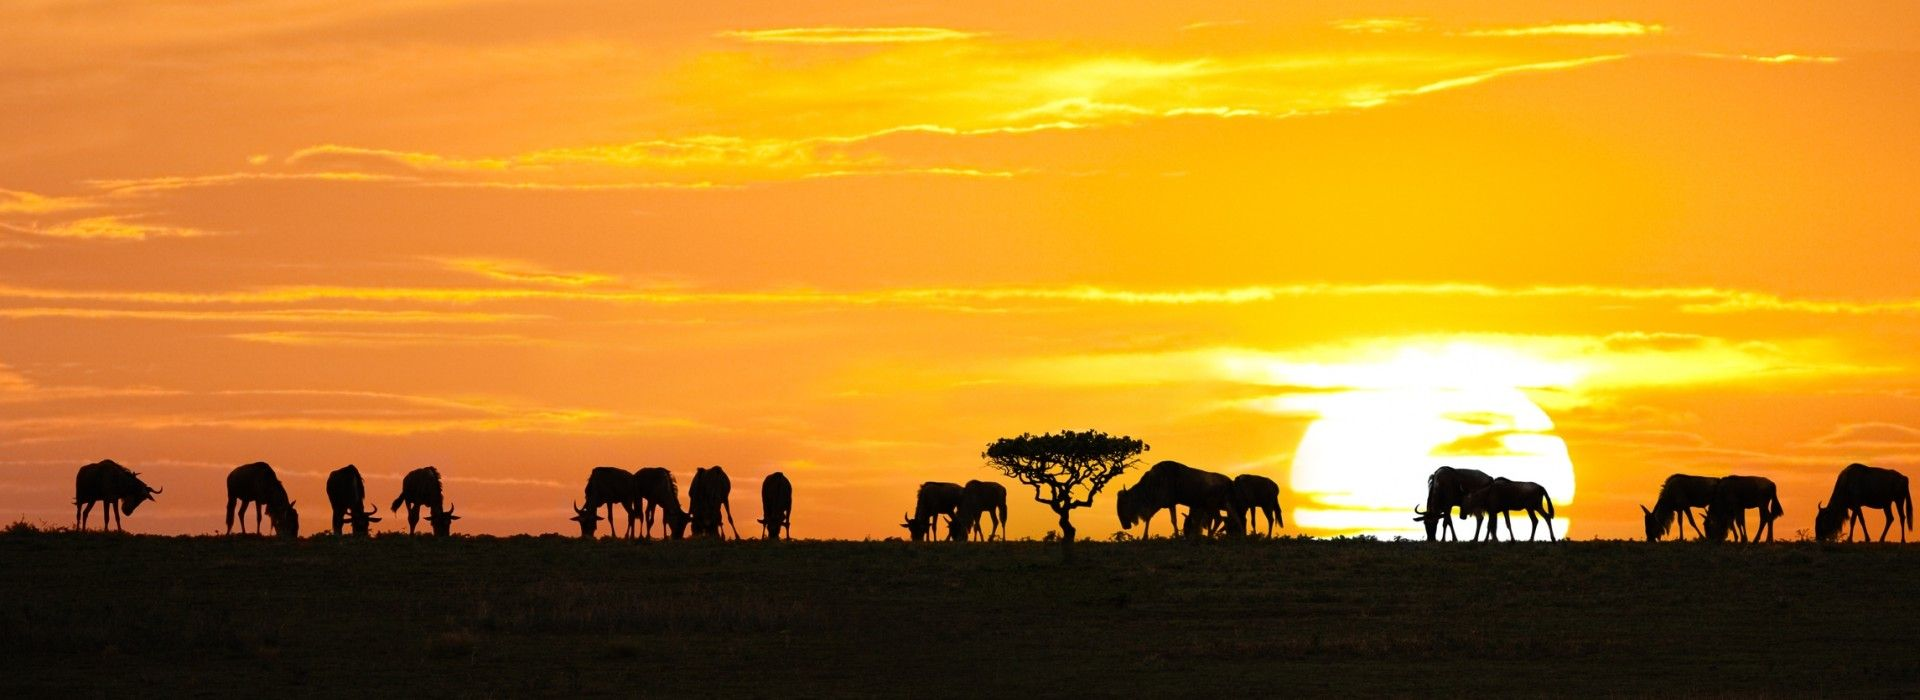 Wildlife, landscapes and nature Tours in Ngorongoro Conservation Area